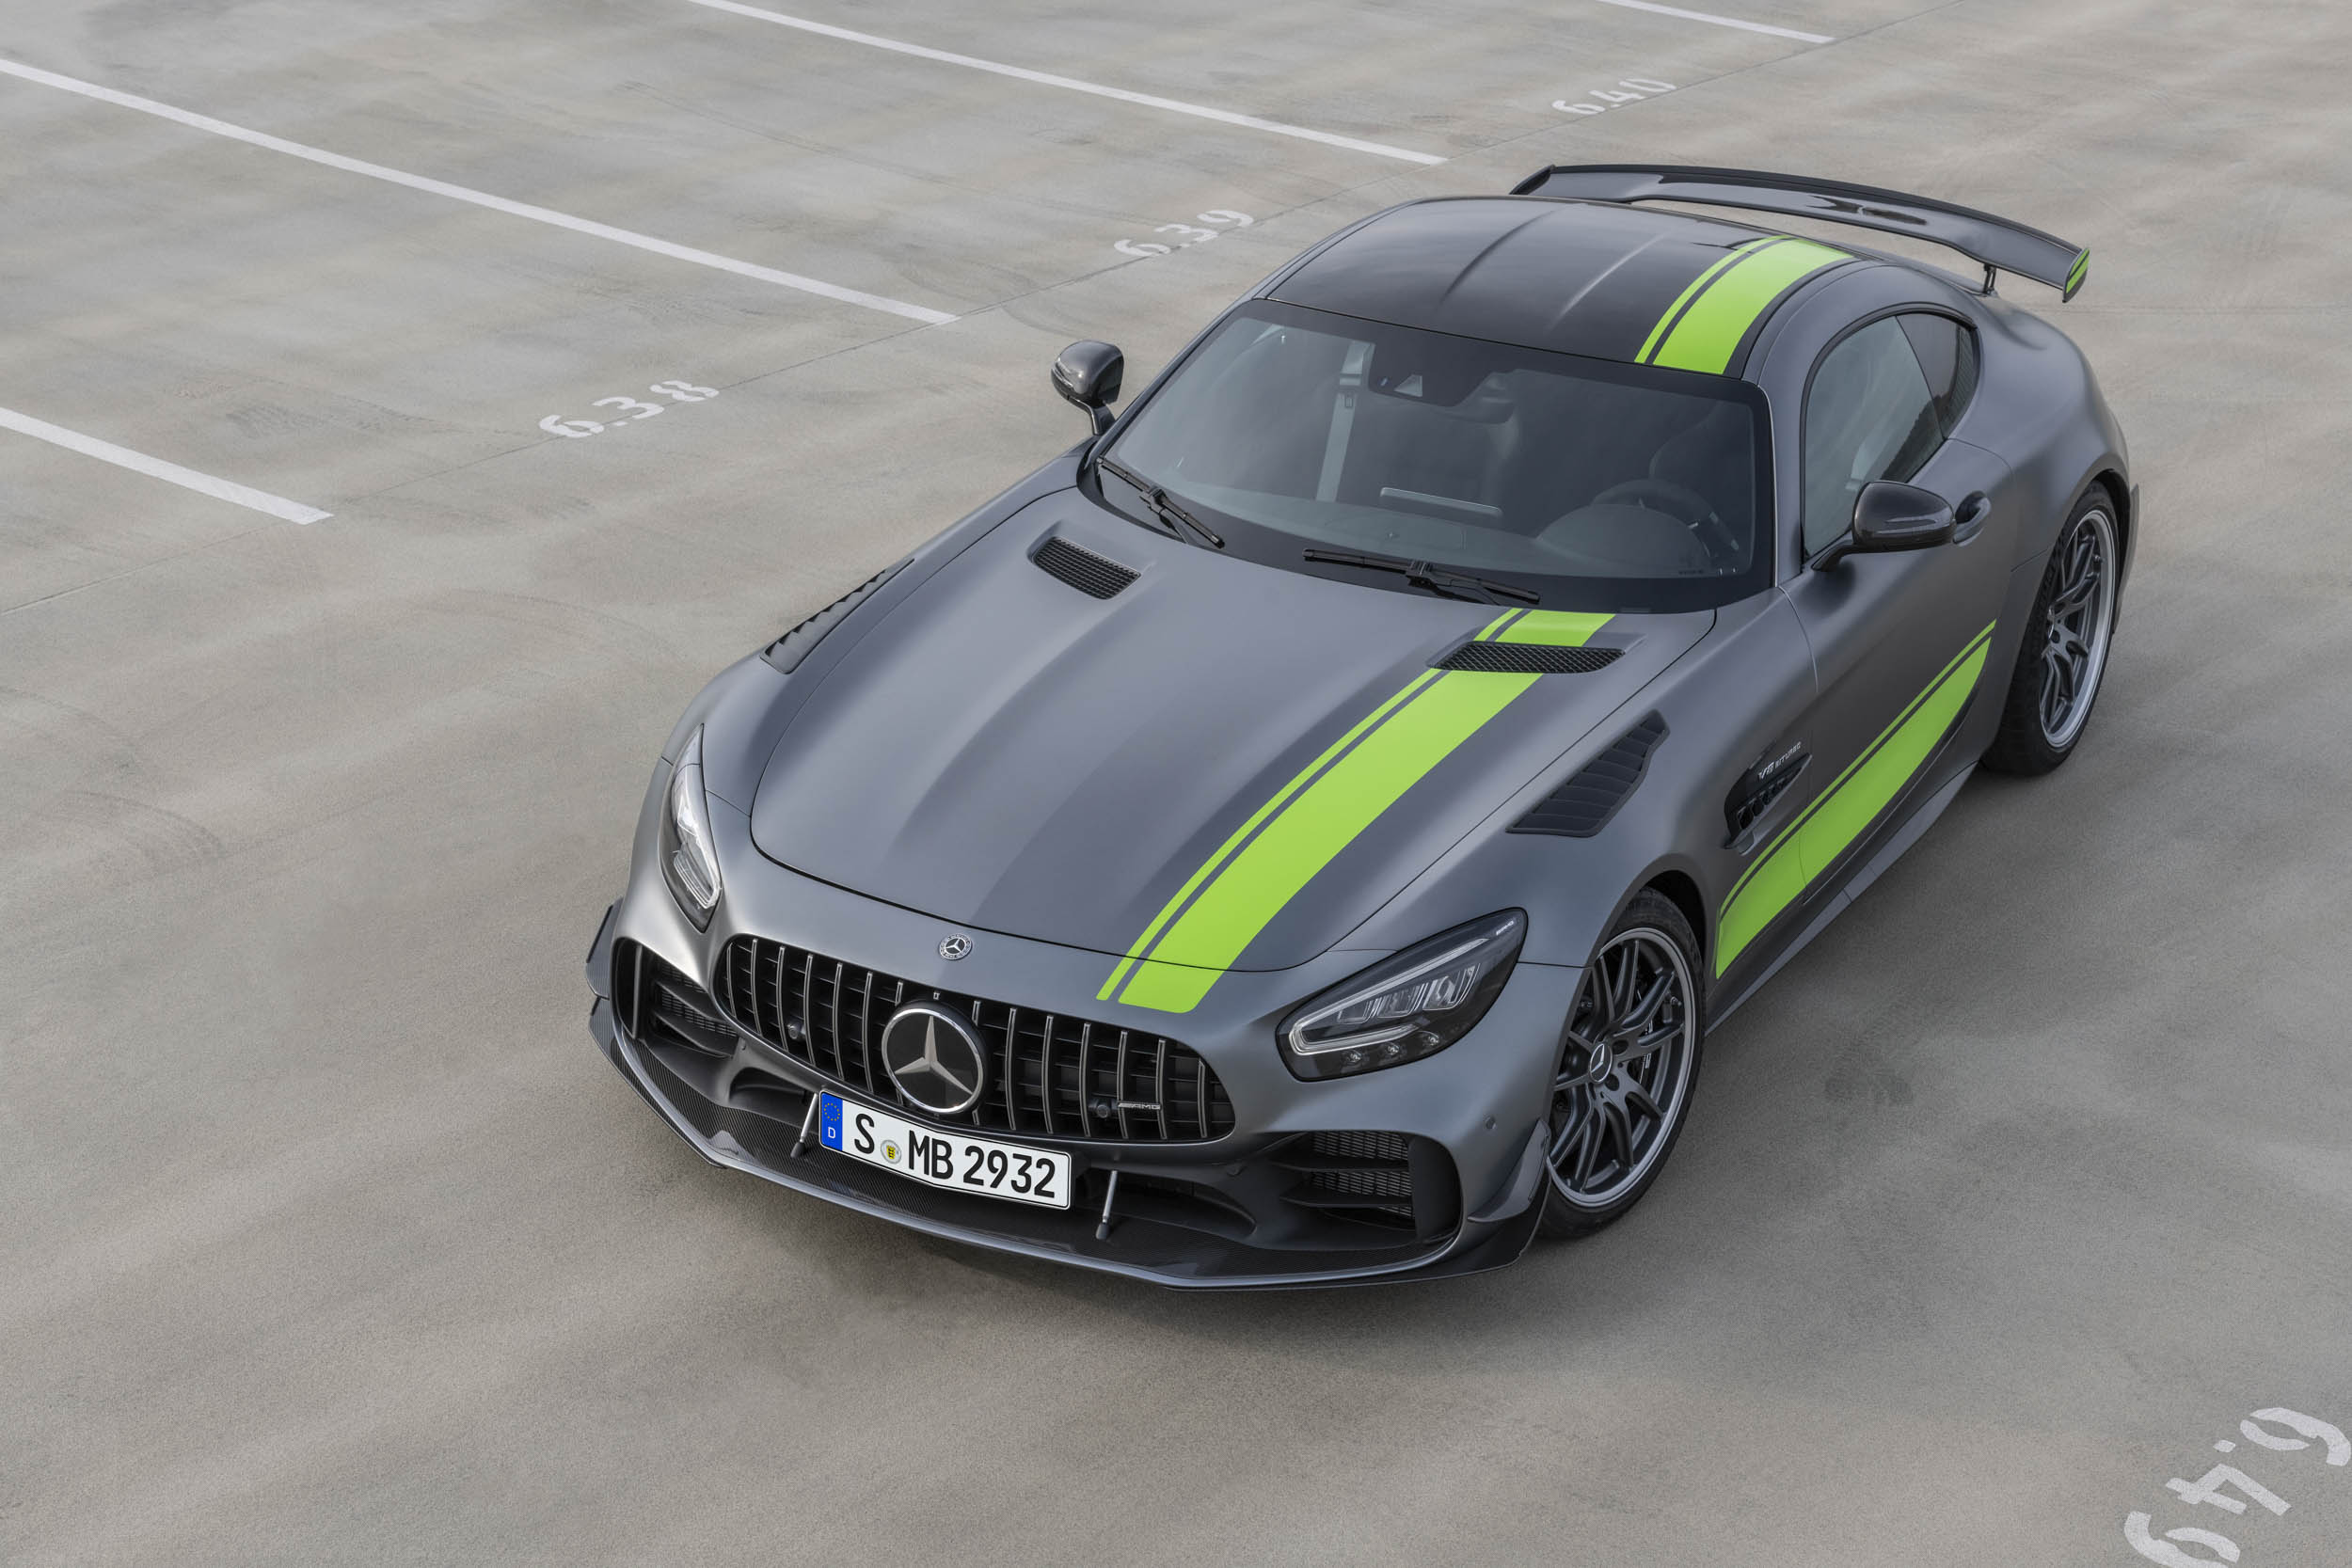 Mercedes-AMG GT R Pro overhead